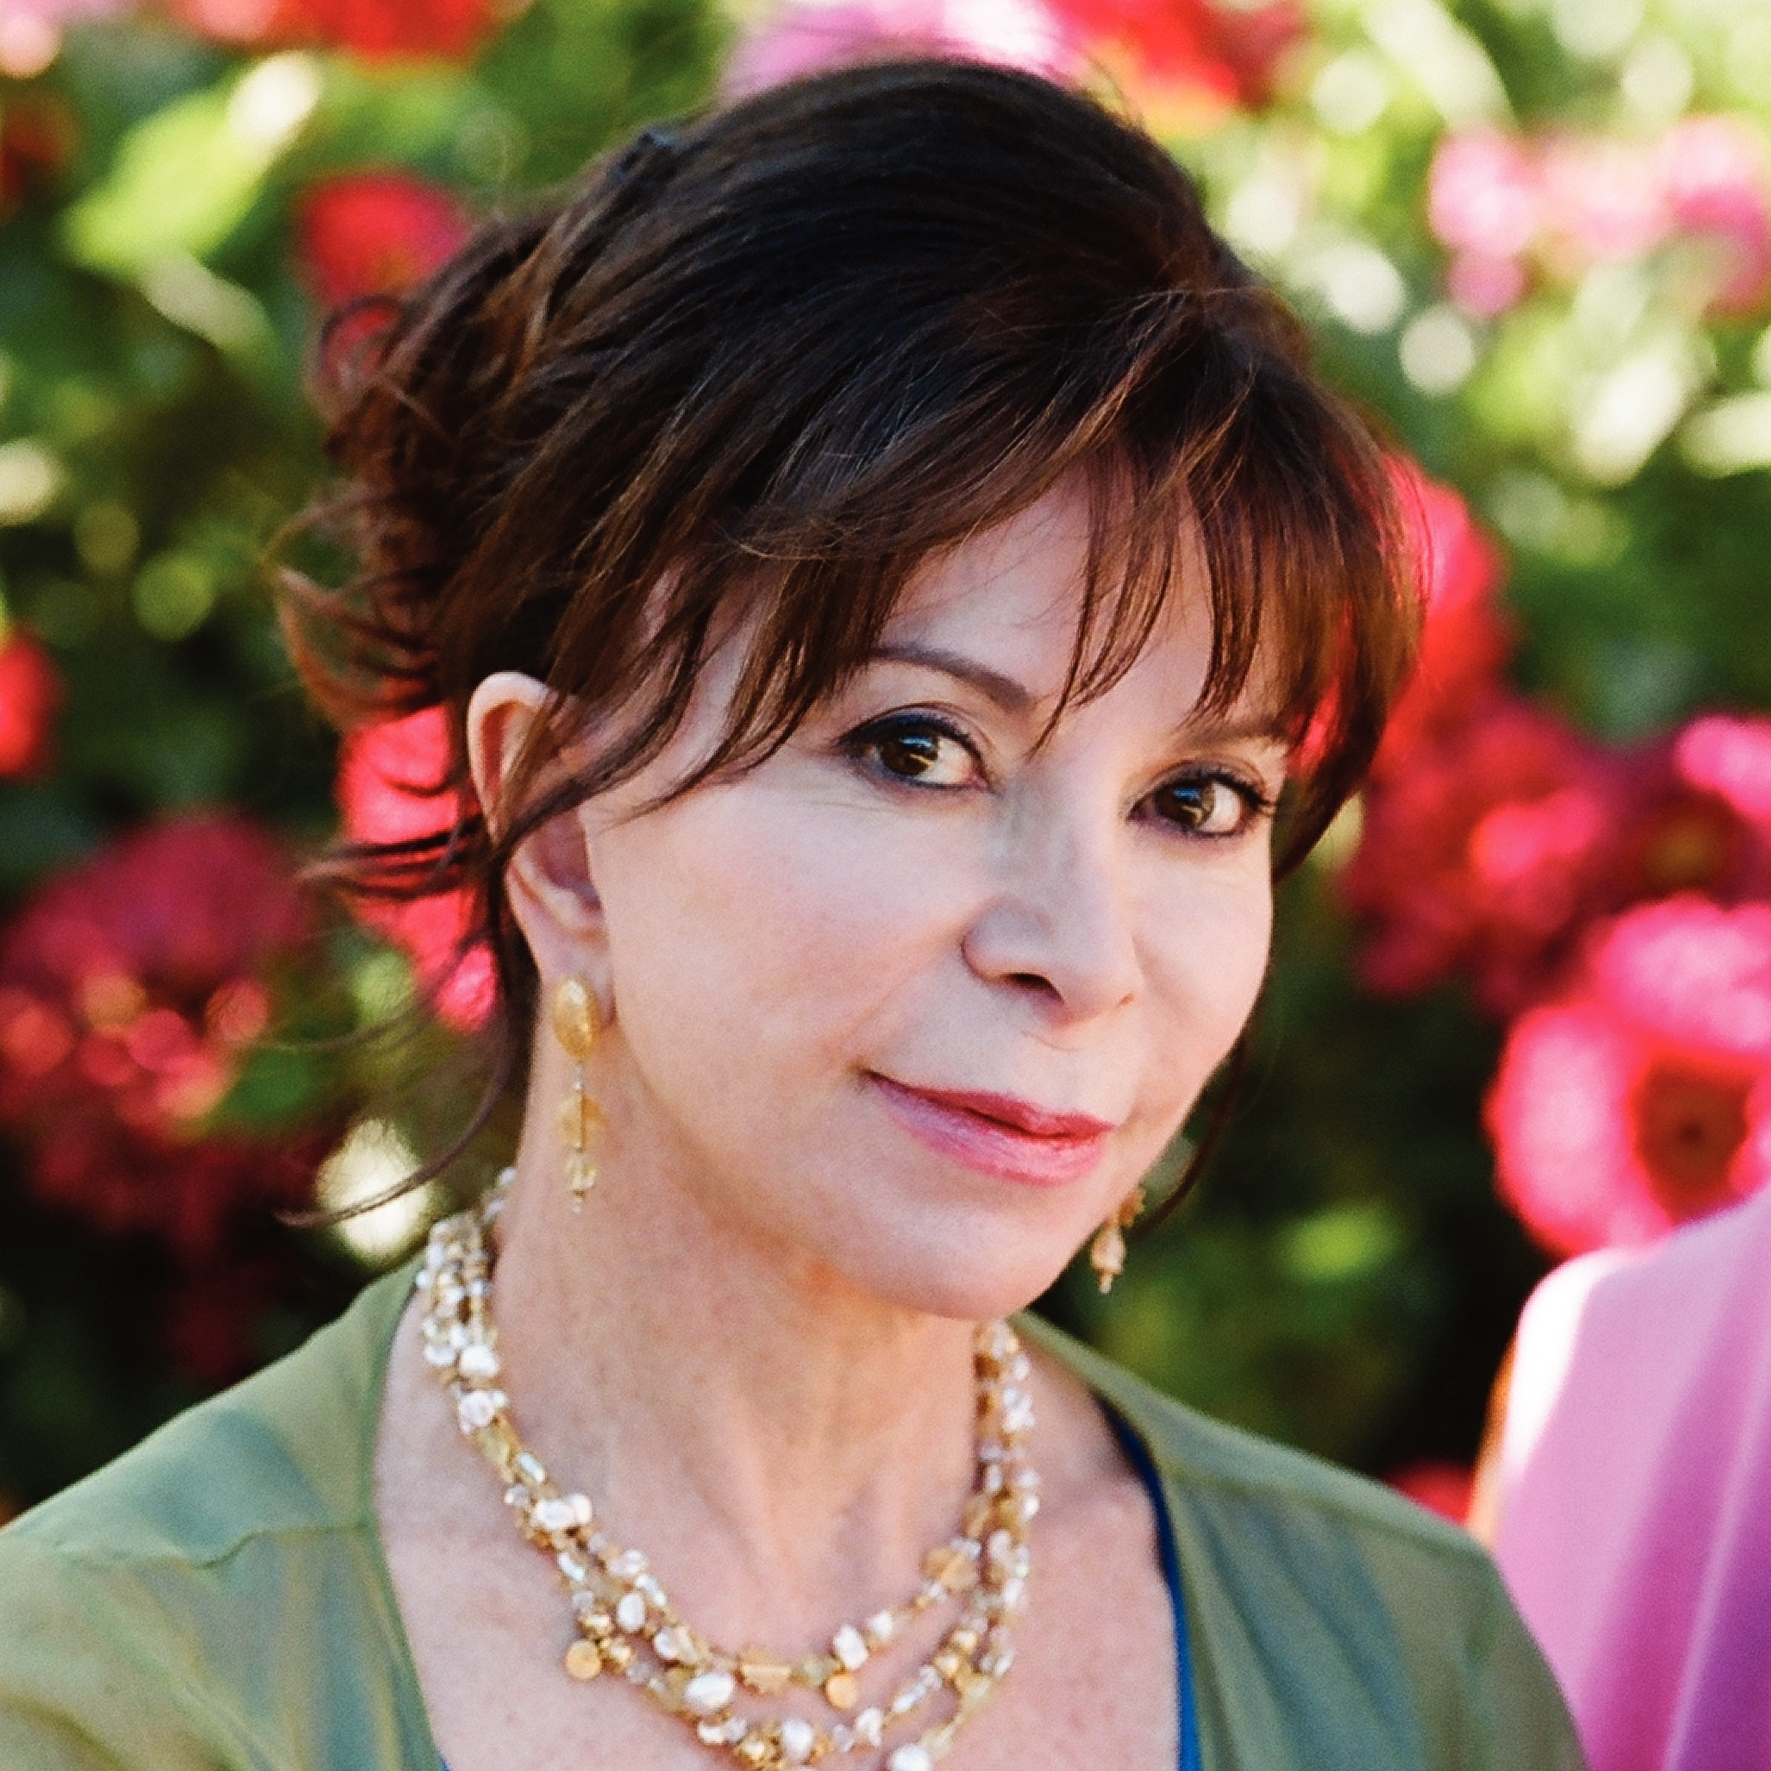 Isabel Allende is a Chilean novelist whose books include The House of the Spirits and City of the Beasts.